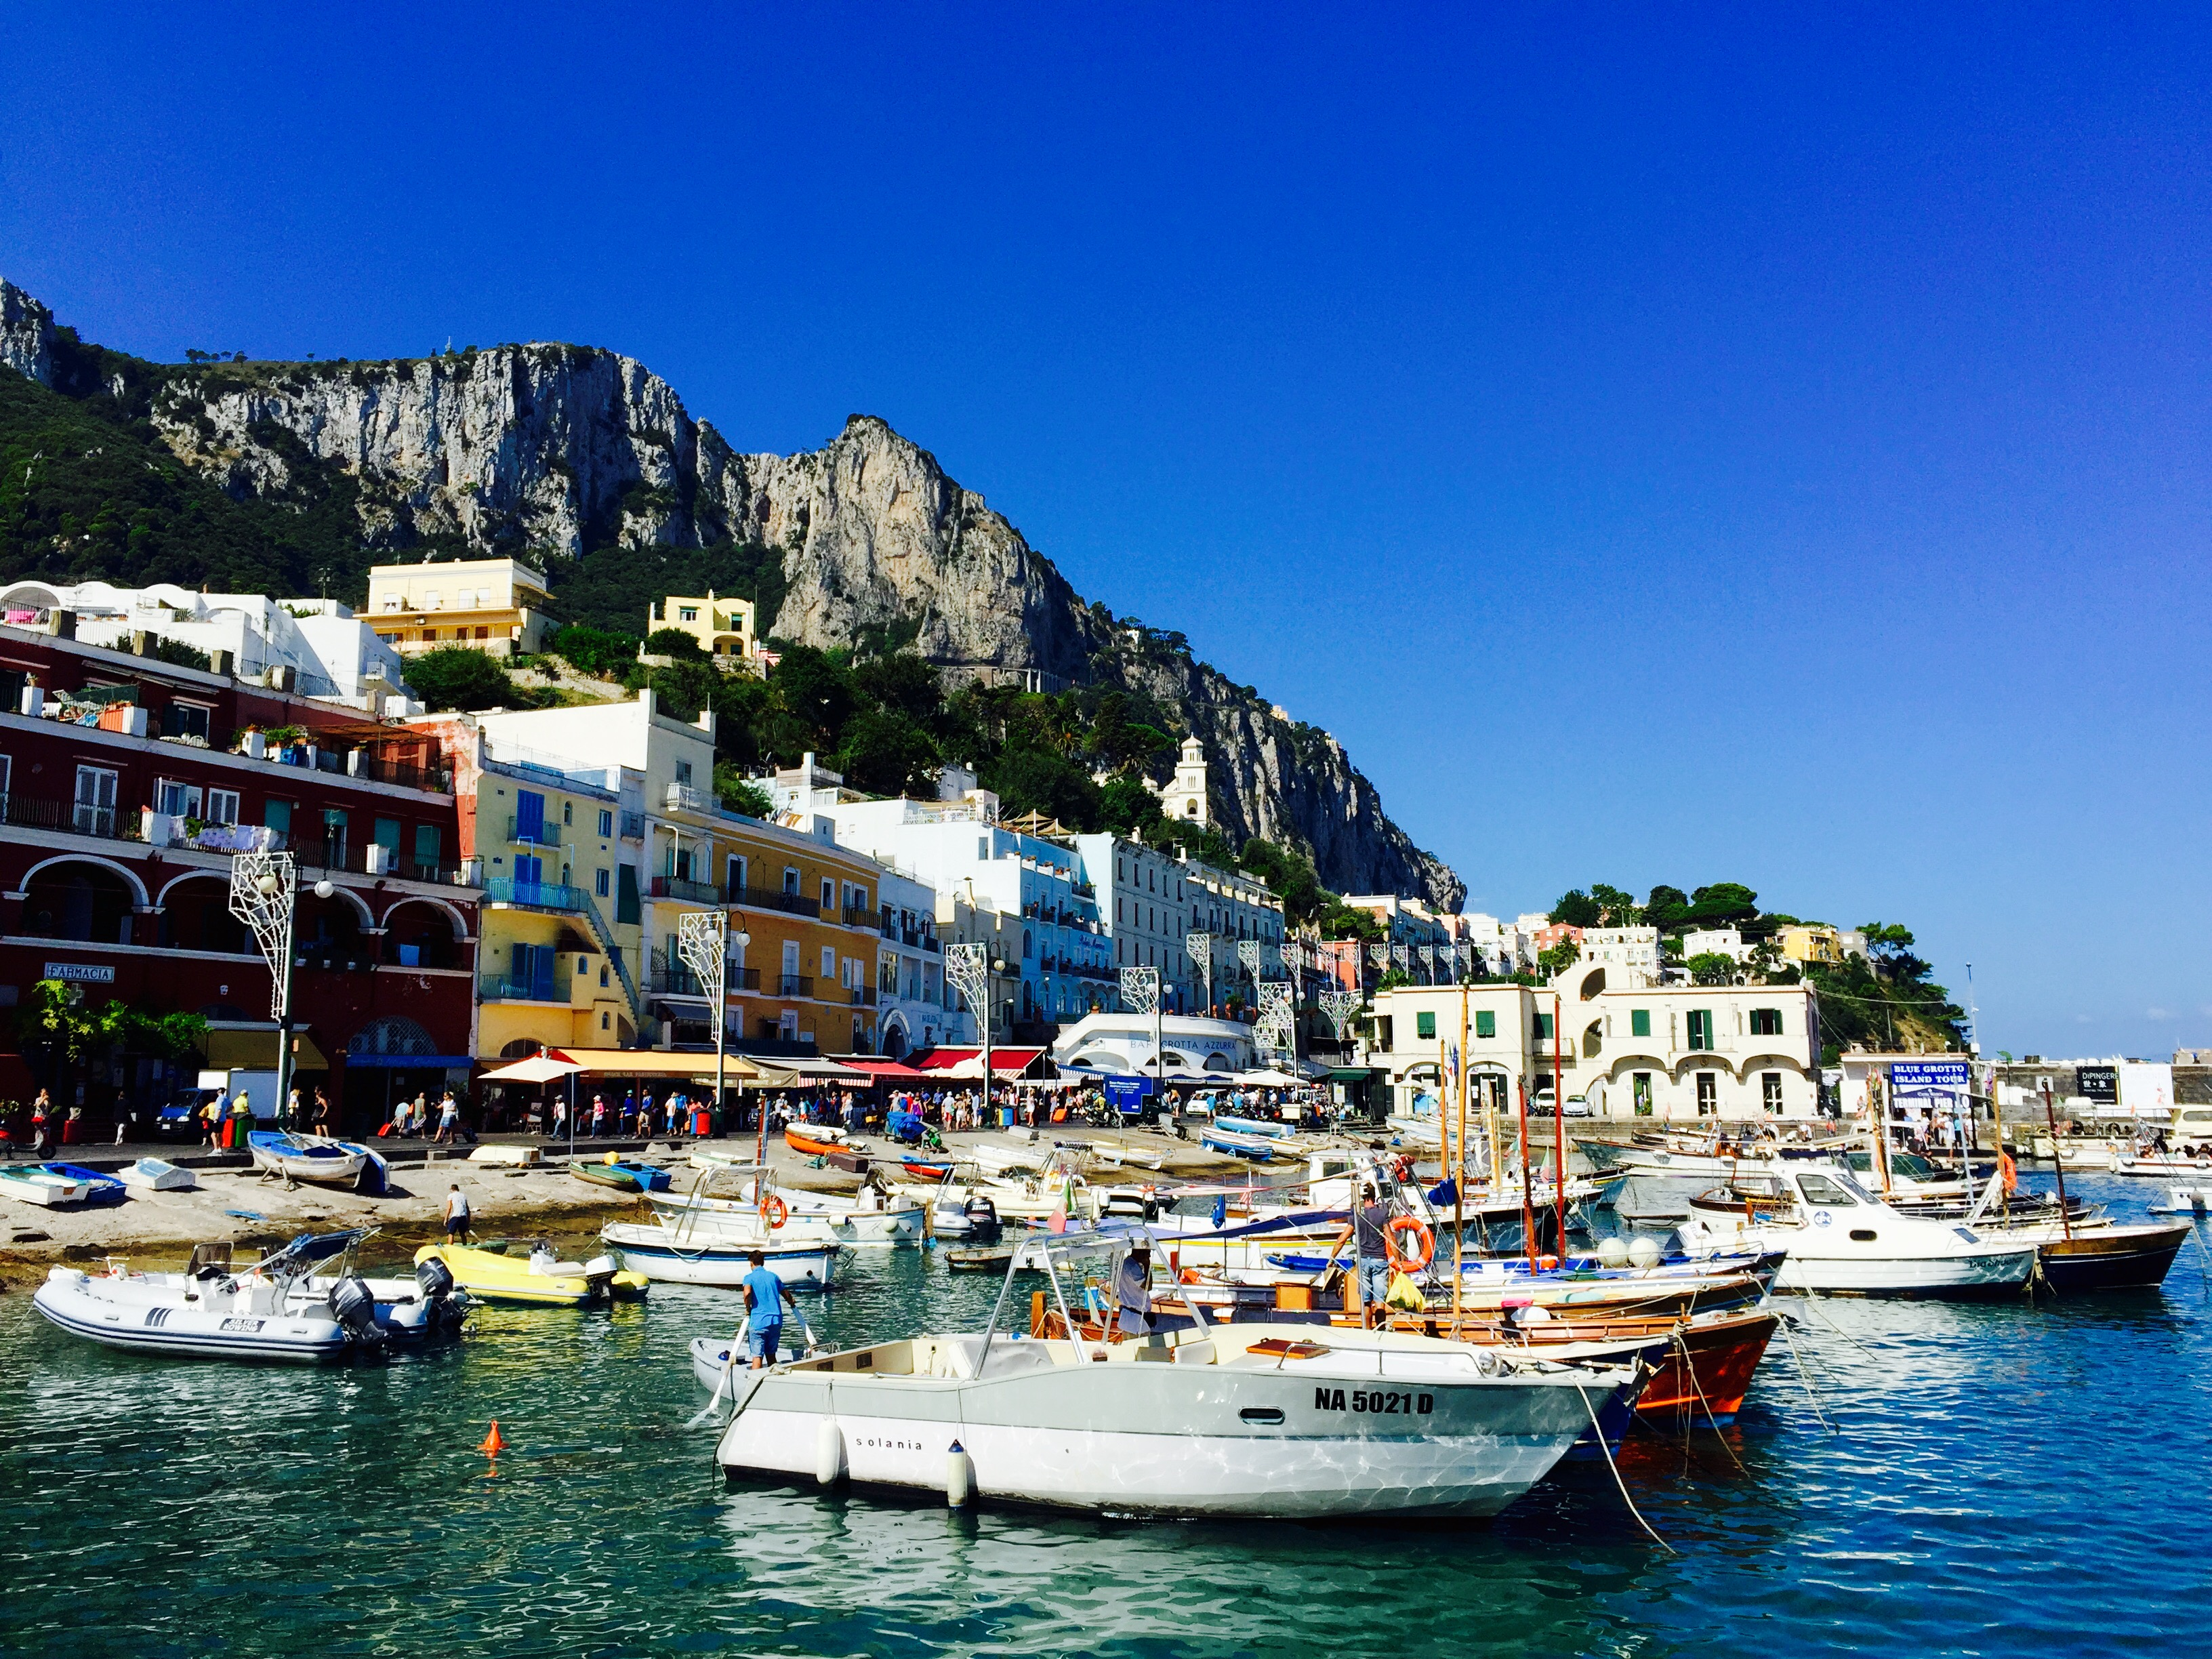 Beautiful and Vibrant Colors of Capri, Campania, Italy